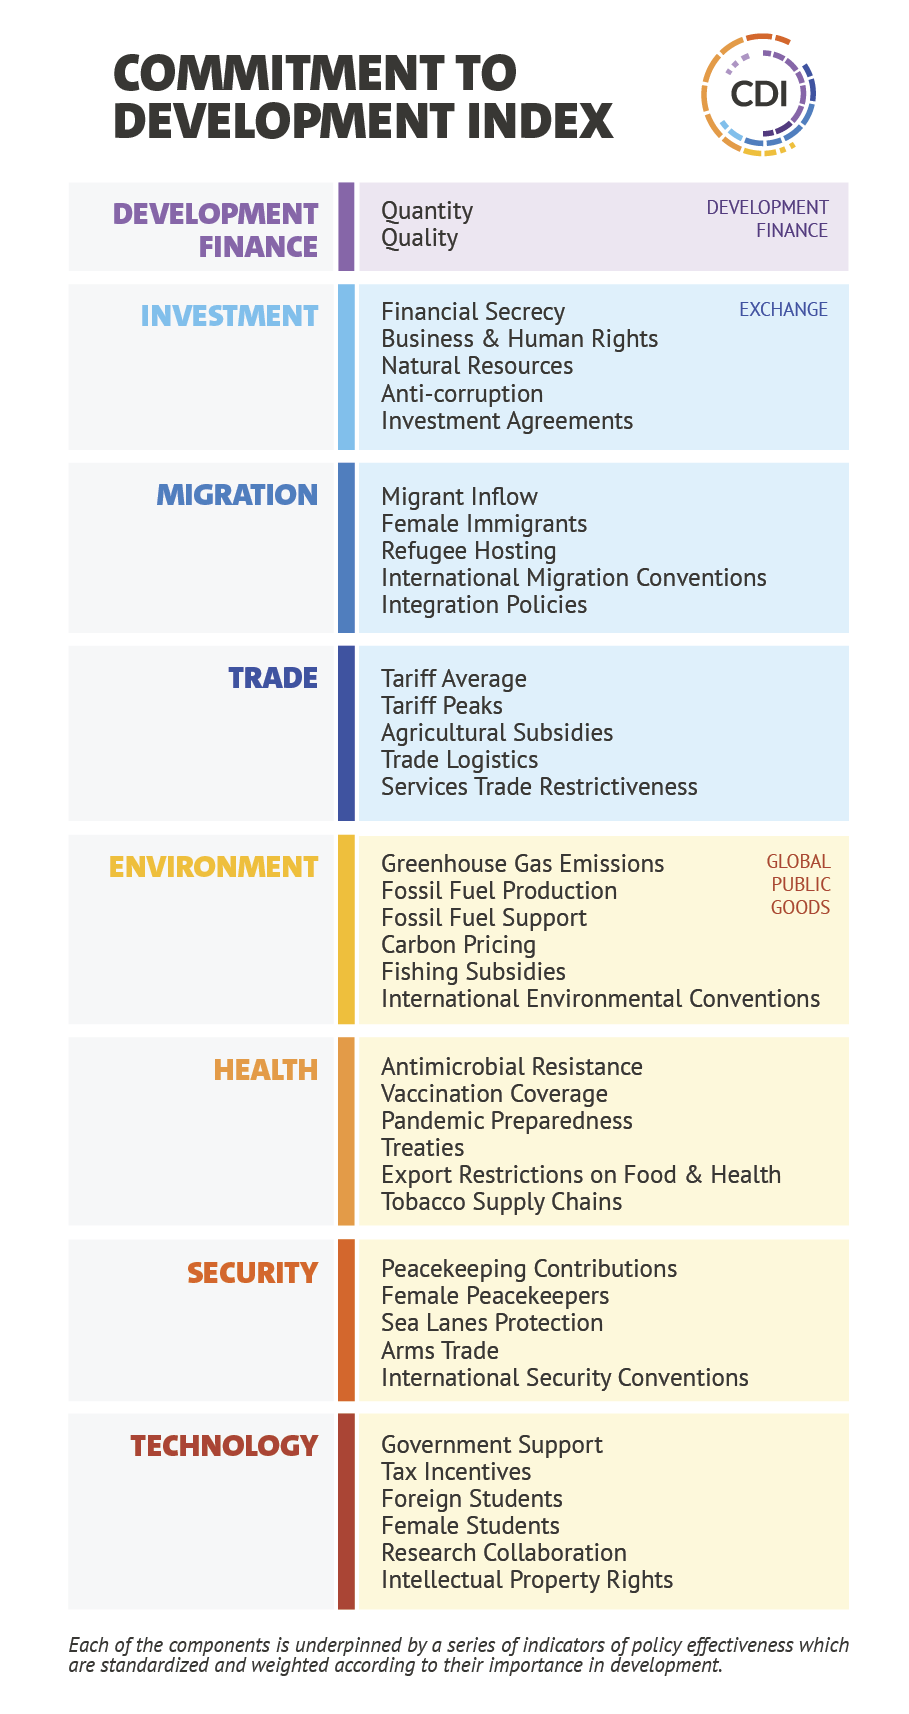 The full organogram of the 2021 commitment to development index